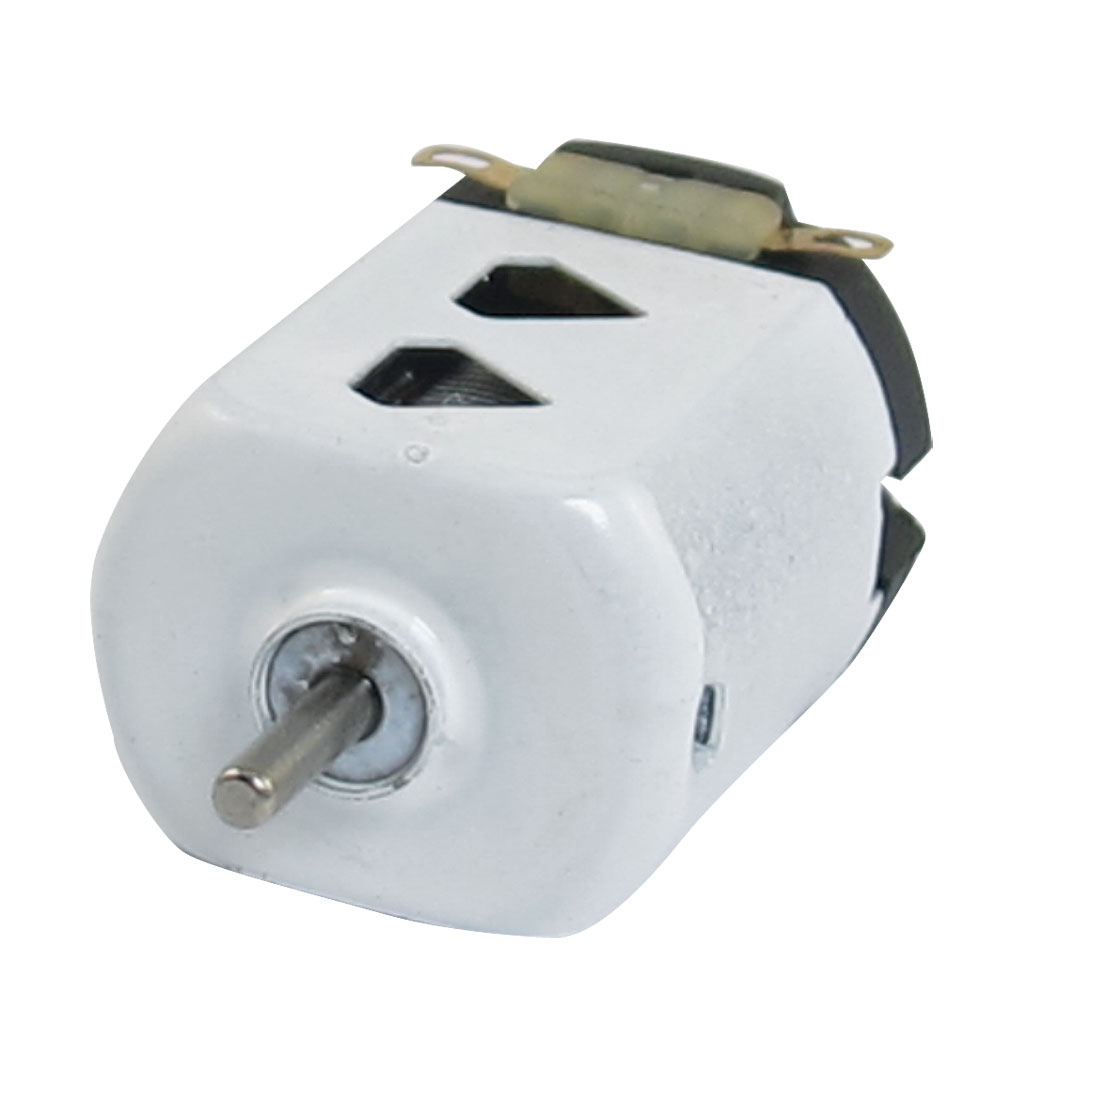 1.5V DC 9000RPM 400mA White Black Flat Electric 130 Motor for Four-wheel Car